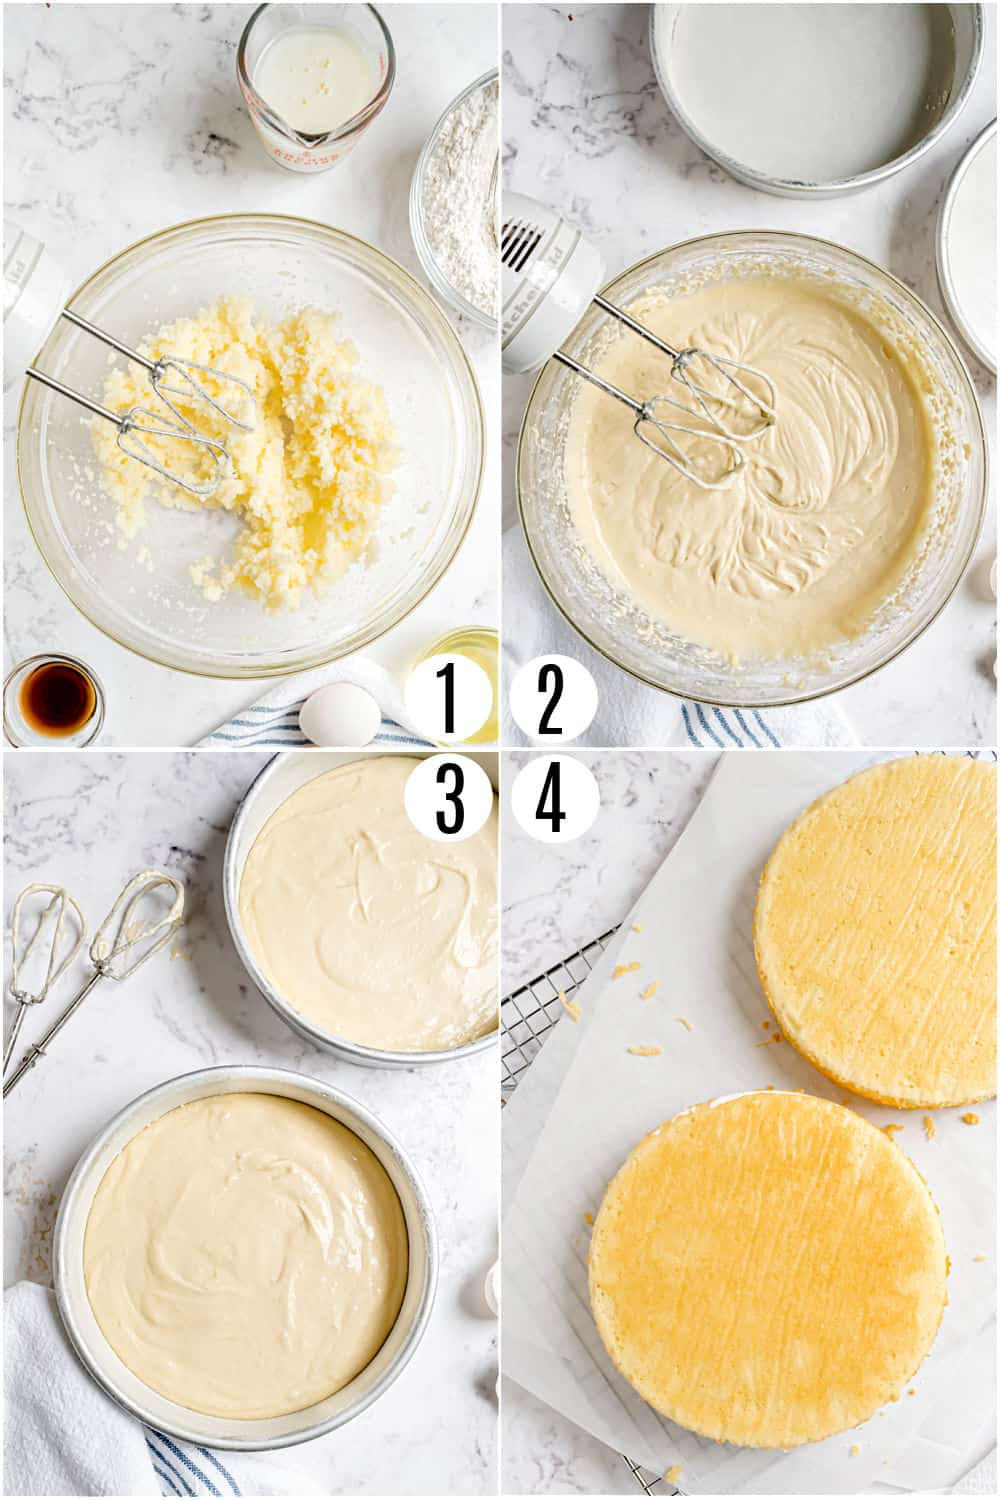 Step by step photos showing how to make the best vanilla cake recipe.